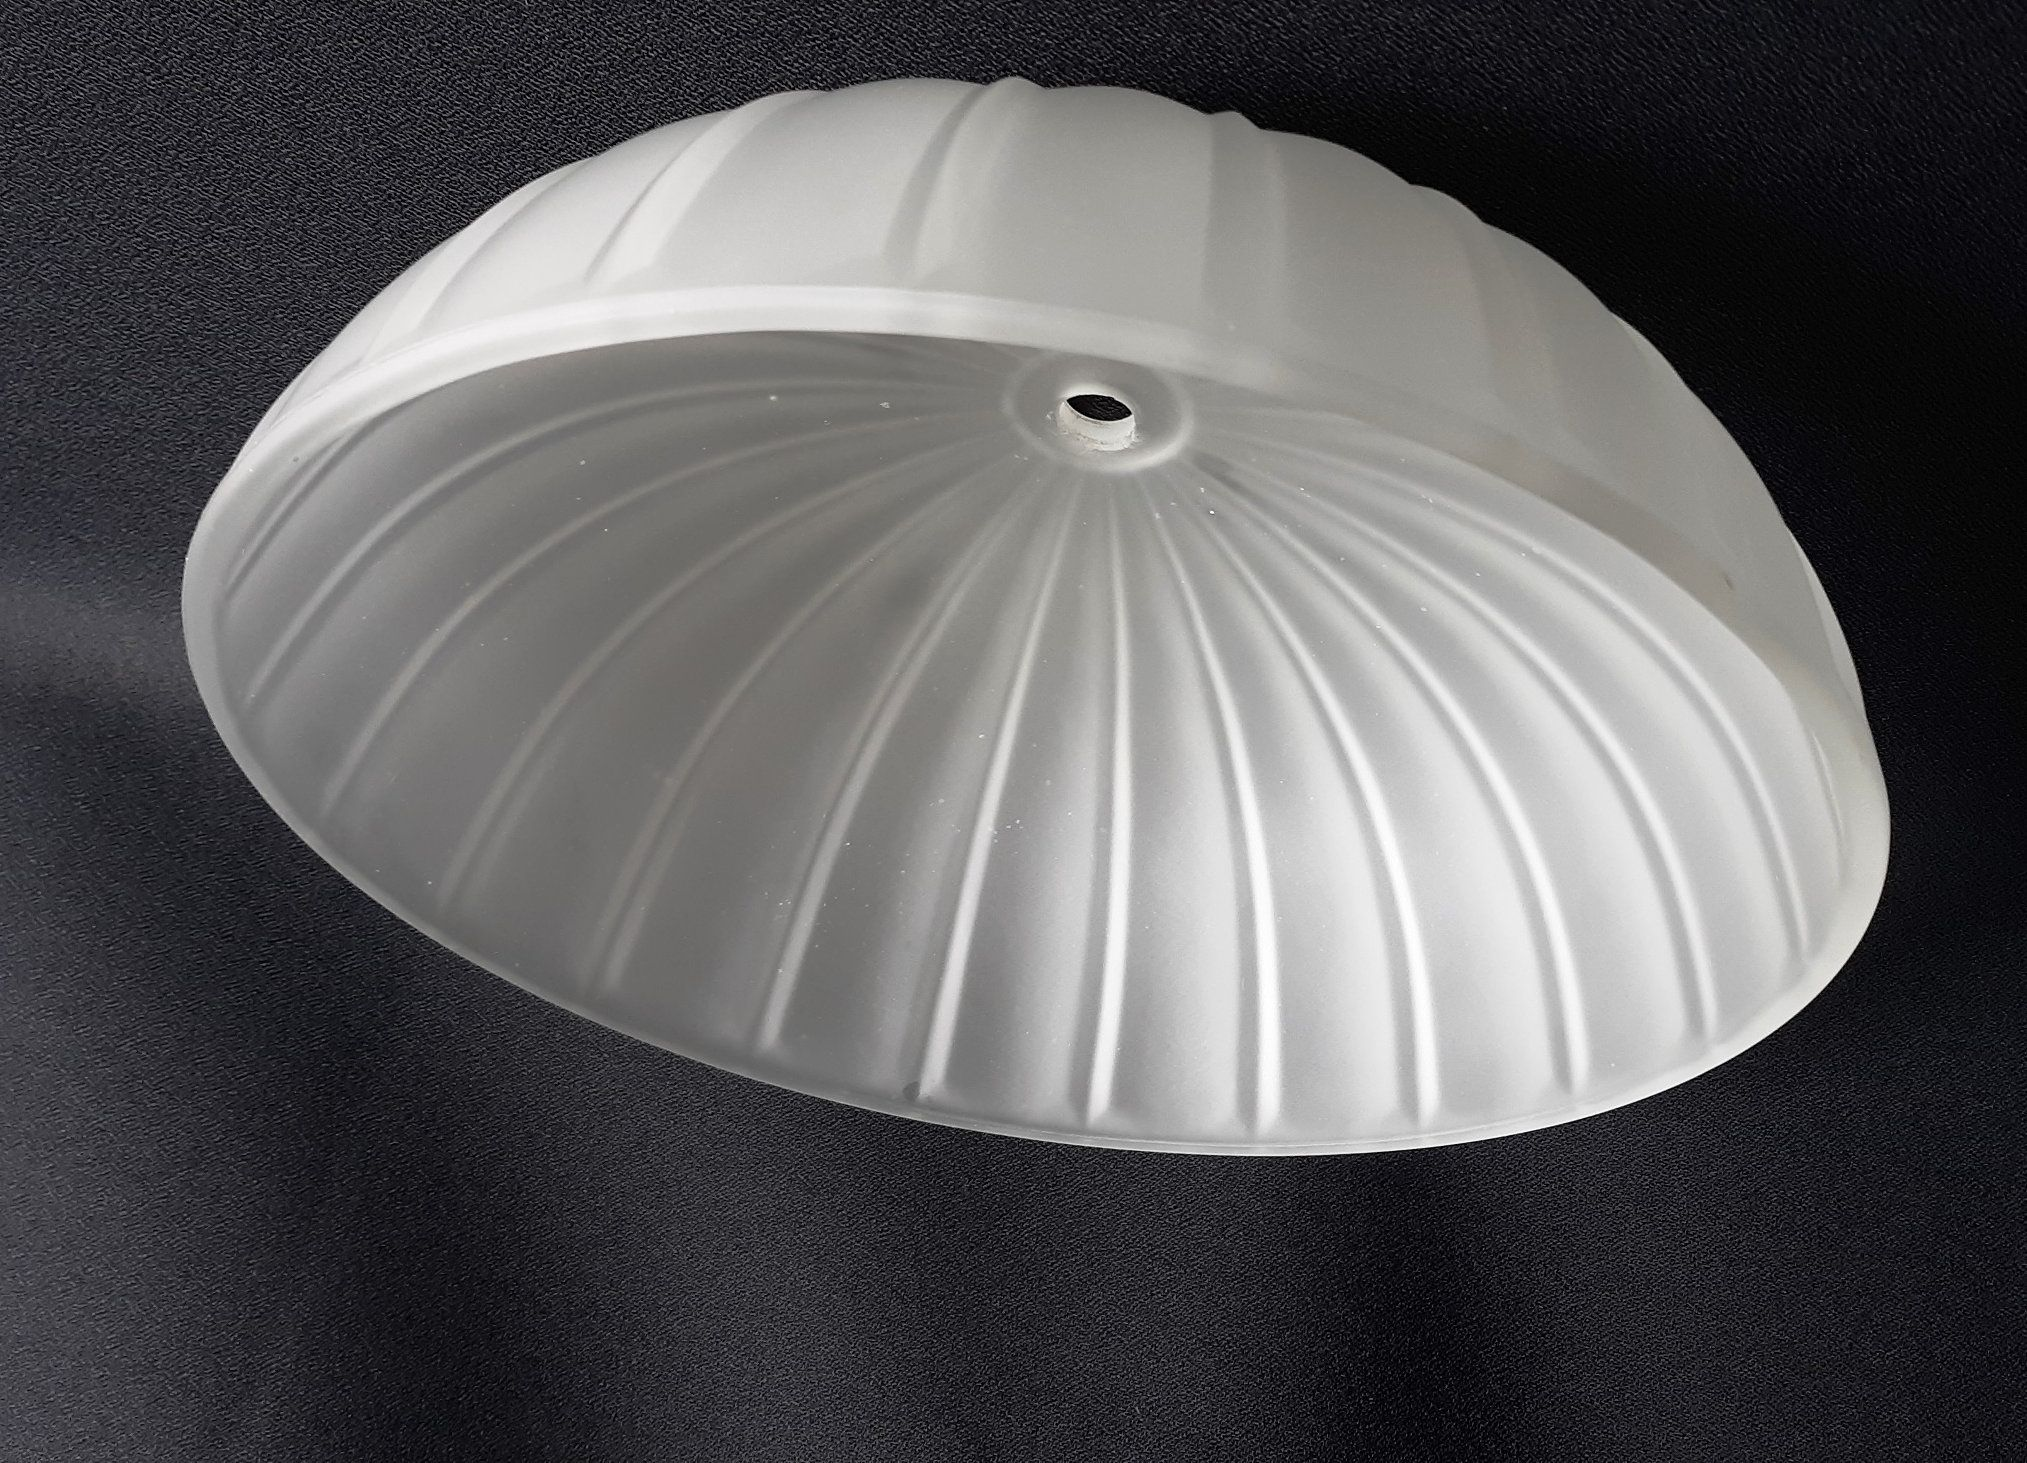 Vintage Frosted Lamp Shade Ceiling Light Globe Round Domed In 2020 Frosted Lamp Retro Lighting Ceiling Lights